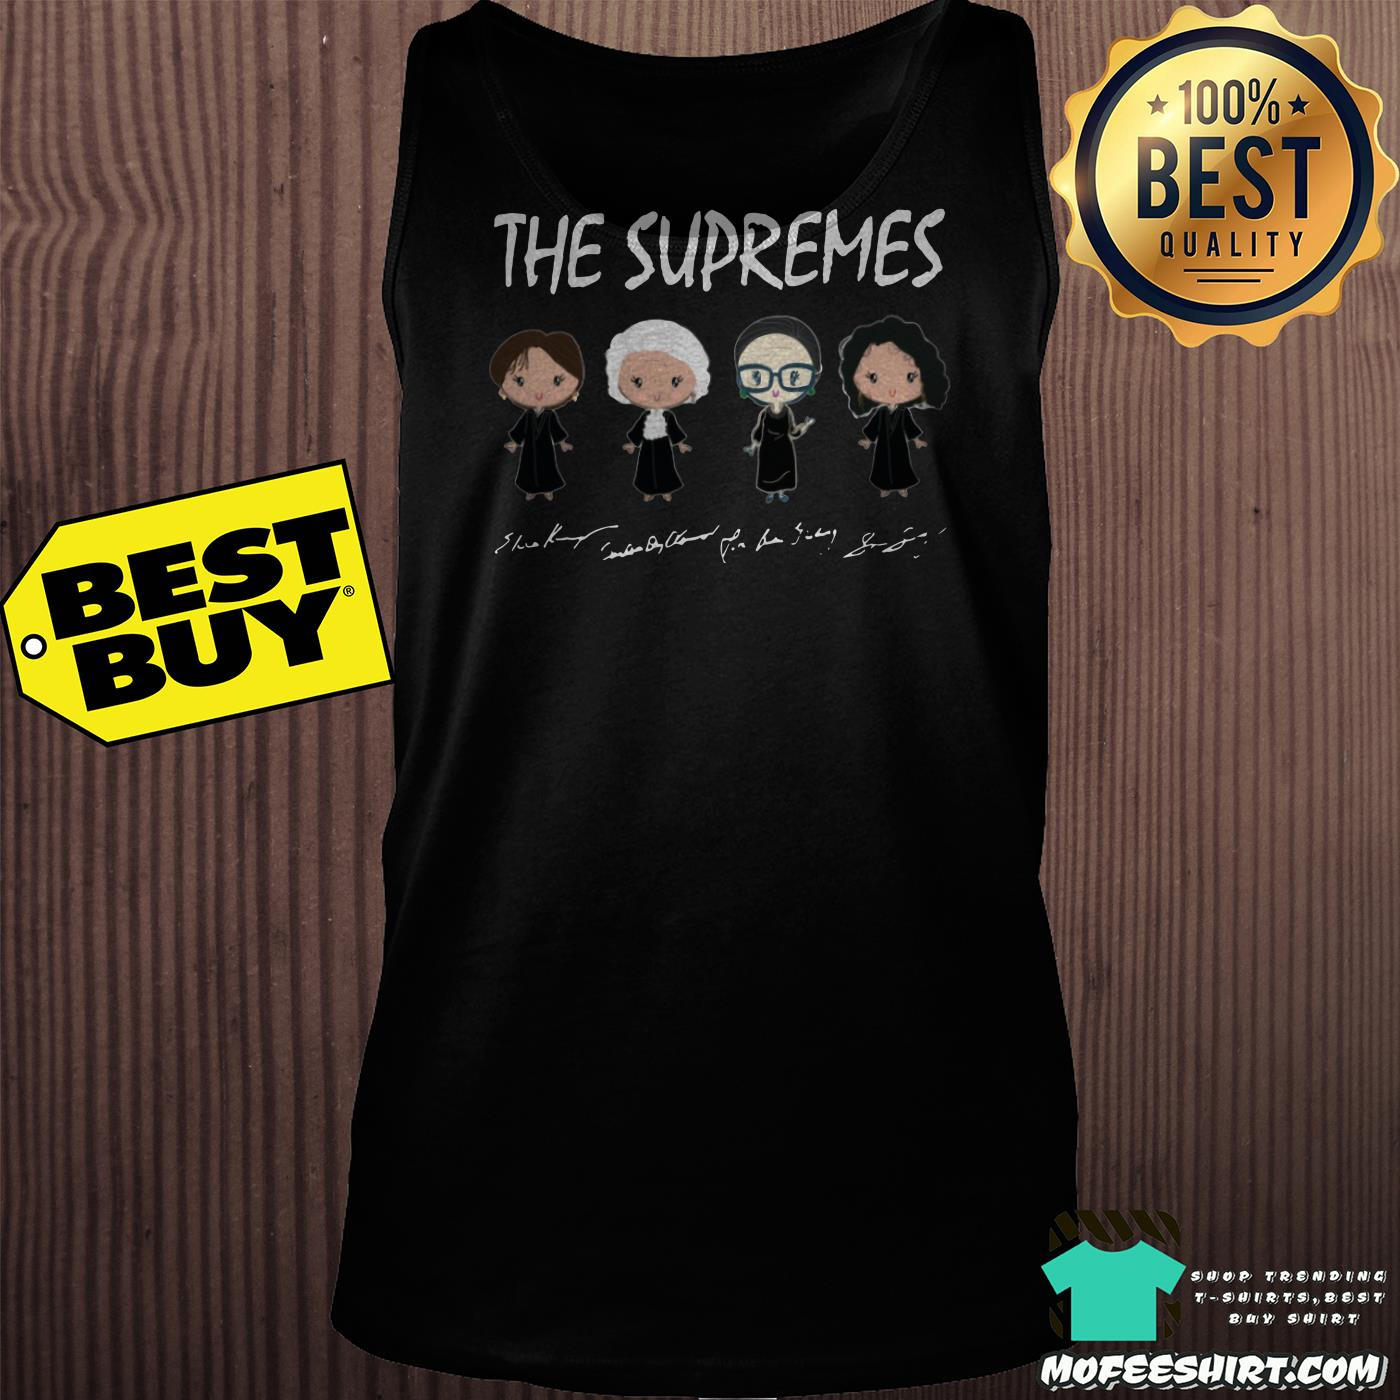 the supremes ruth bader ginsburg signatures tank top - The supremes Ruth Bader Ginsburg signatures shirt